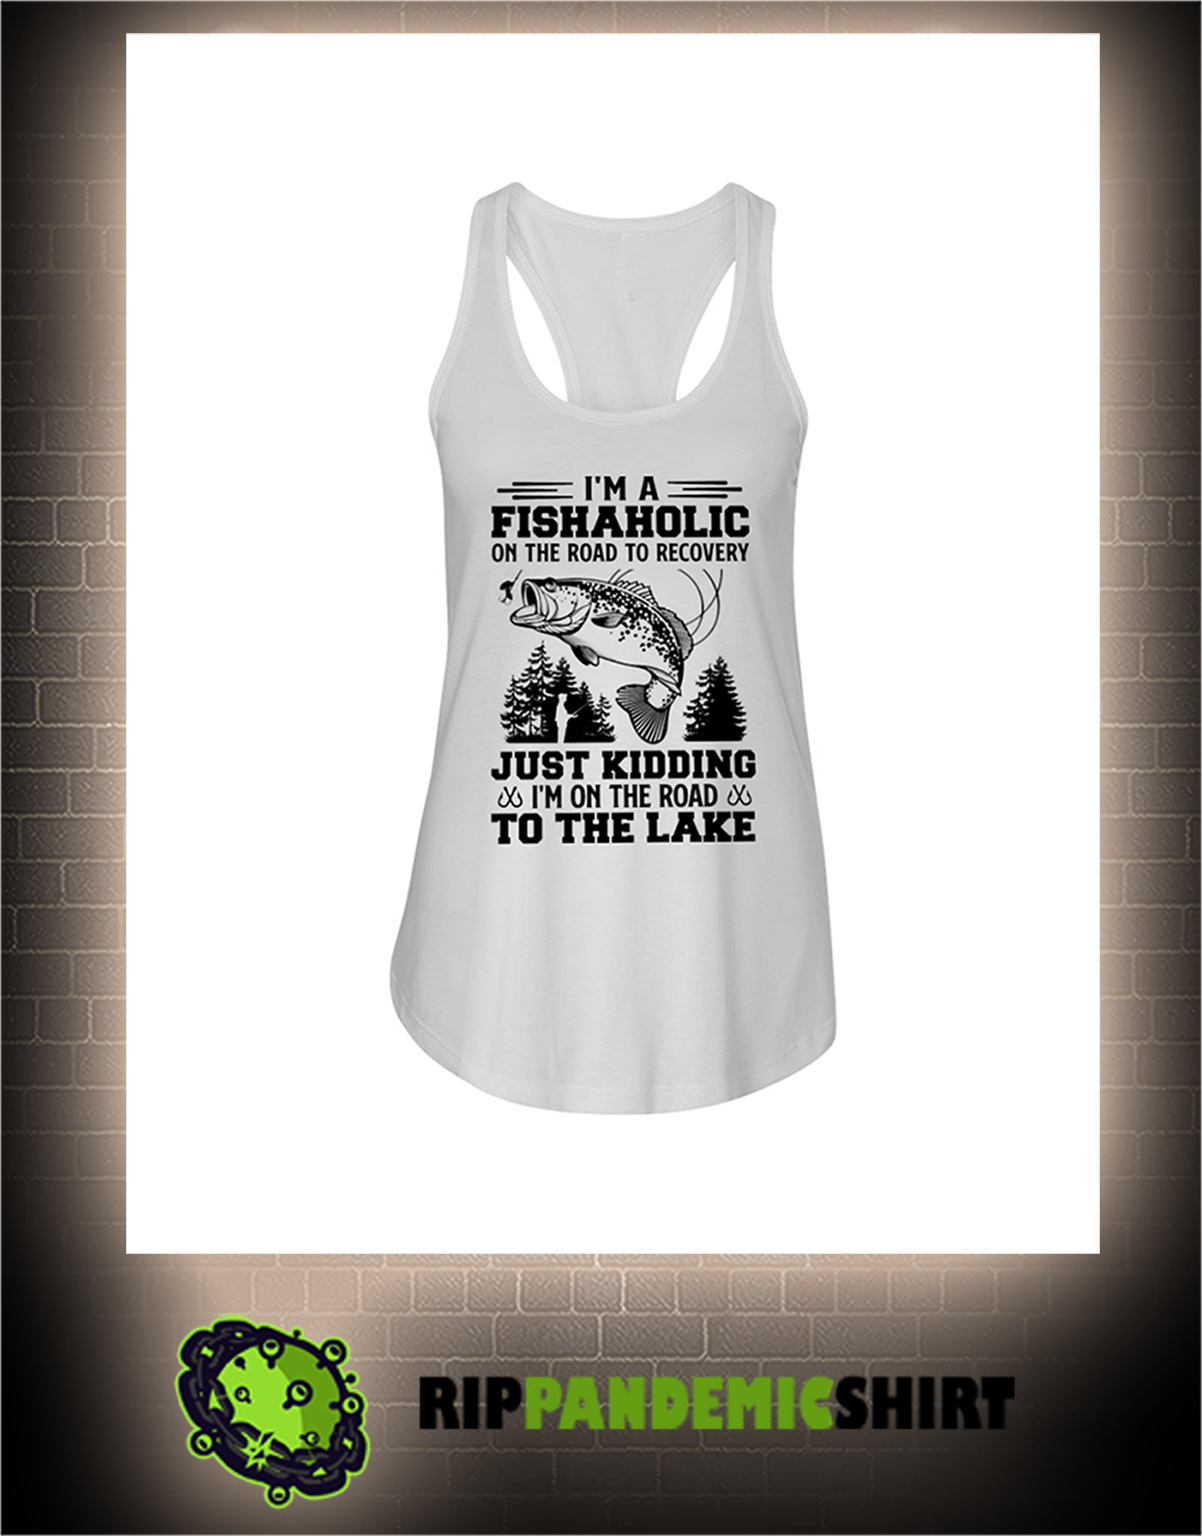 Fishing I'm a fishaholic on the road to recovery flowy tank